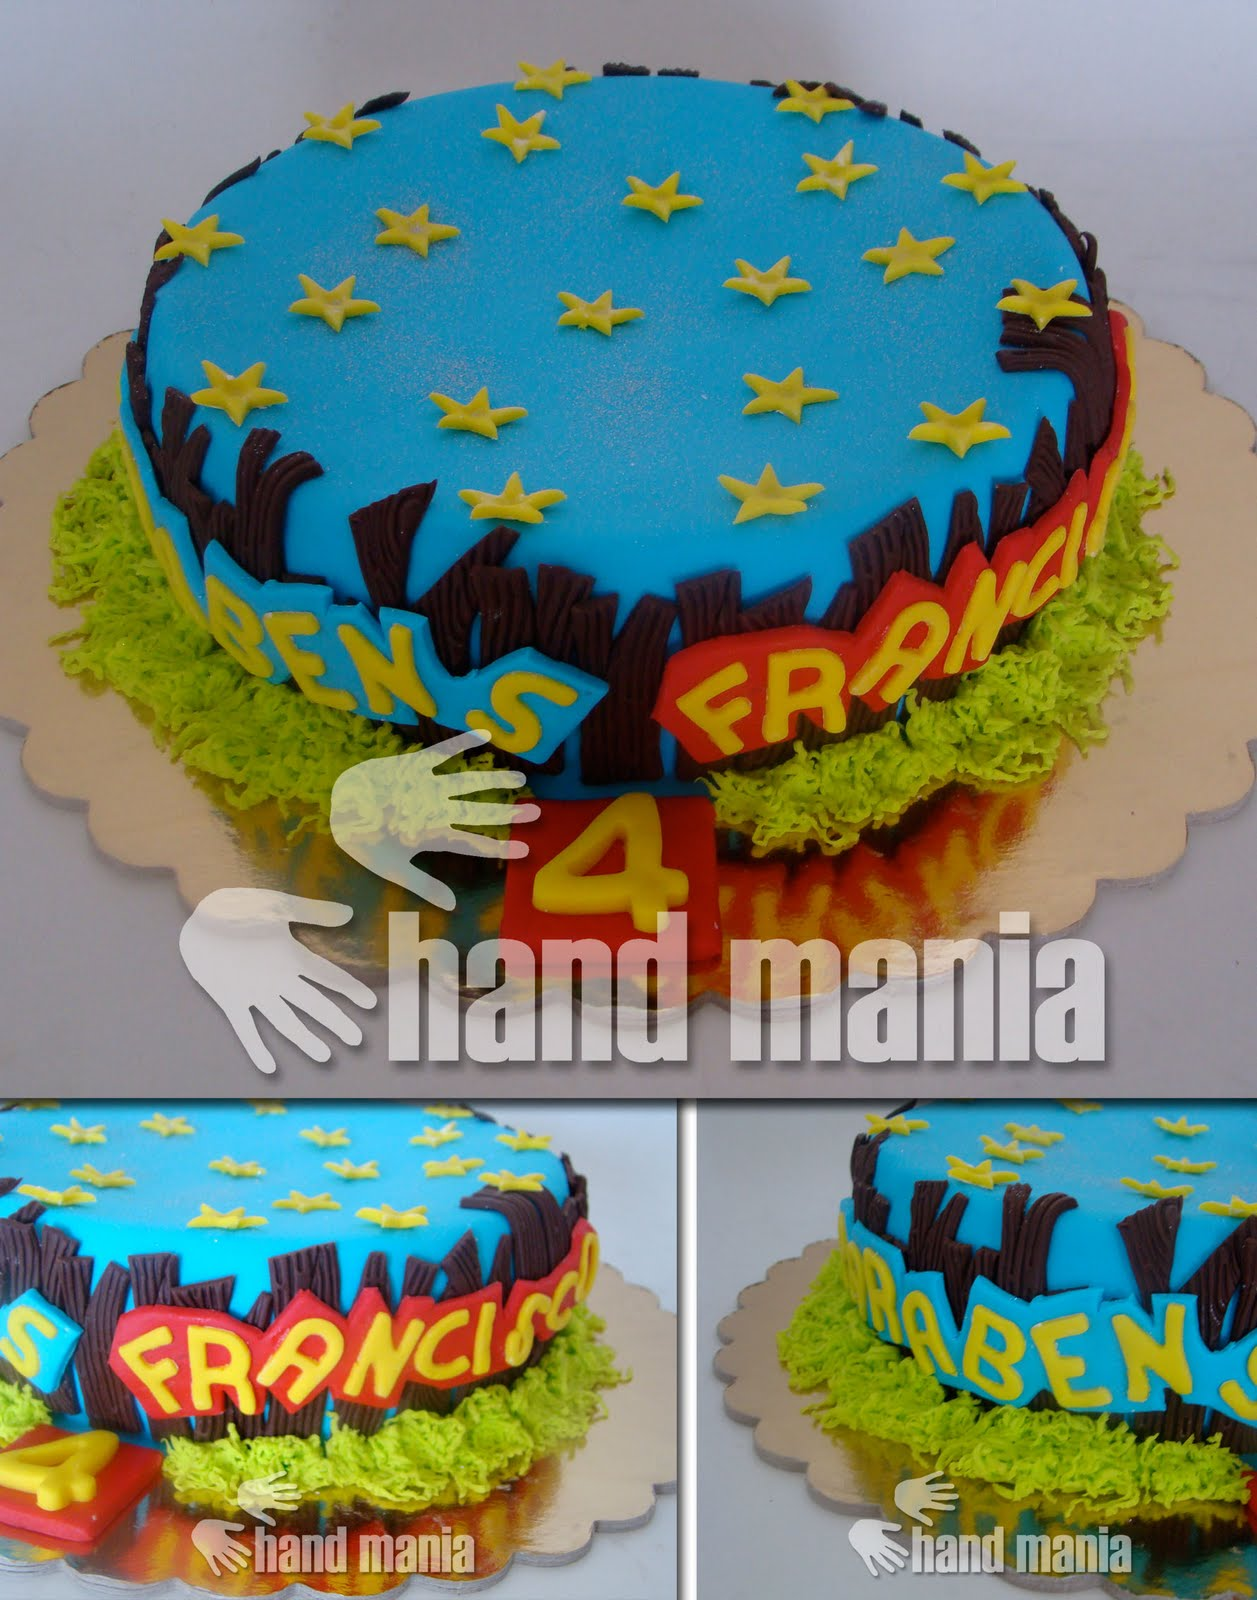 Juegos De Baños Decorados:kB · jpeg, CAKE DESIGN BOLOS DECORADOS source: http://handmania-bolos